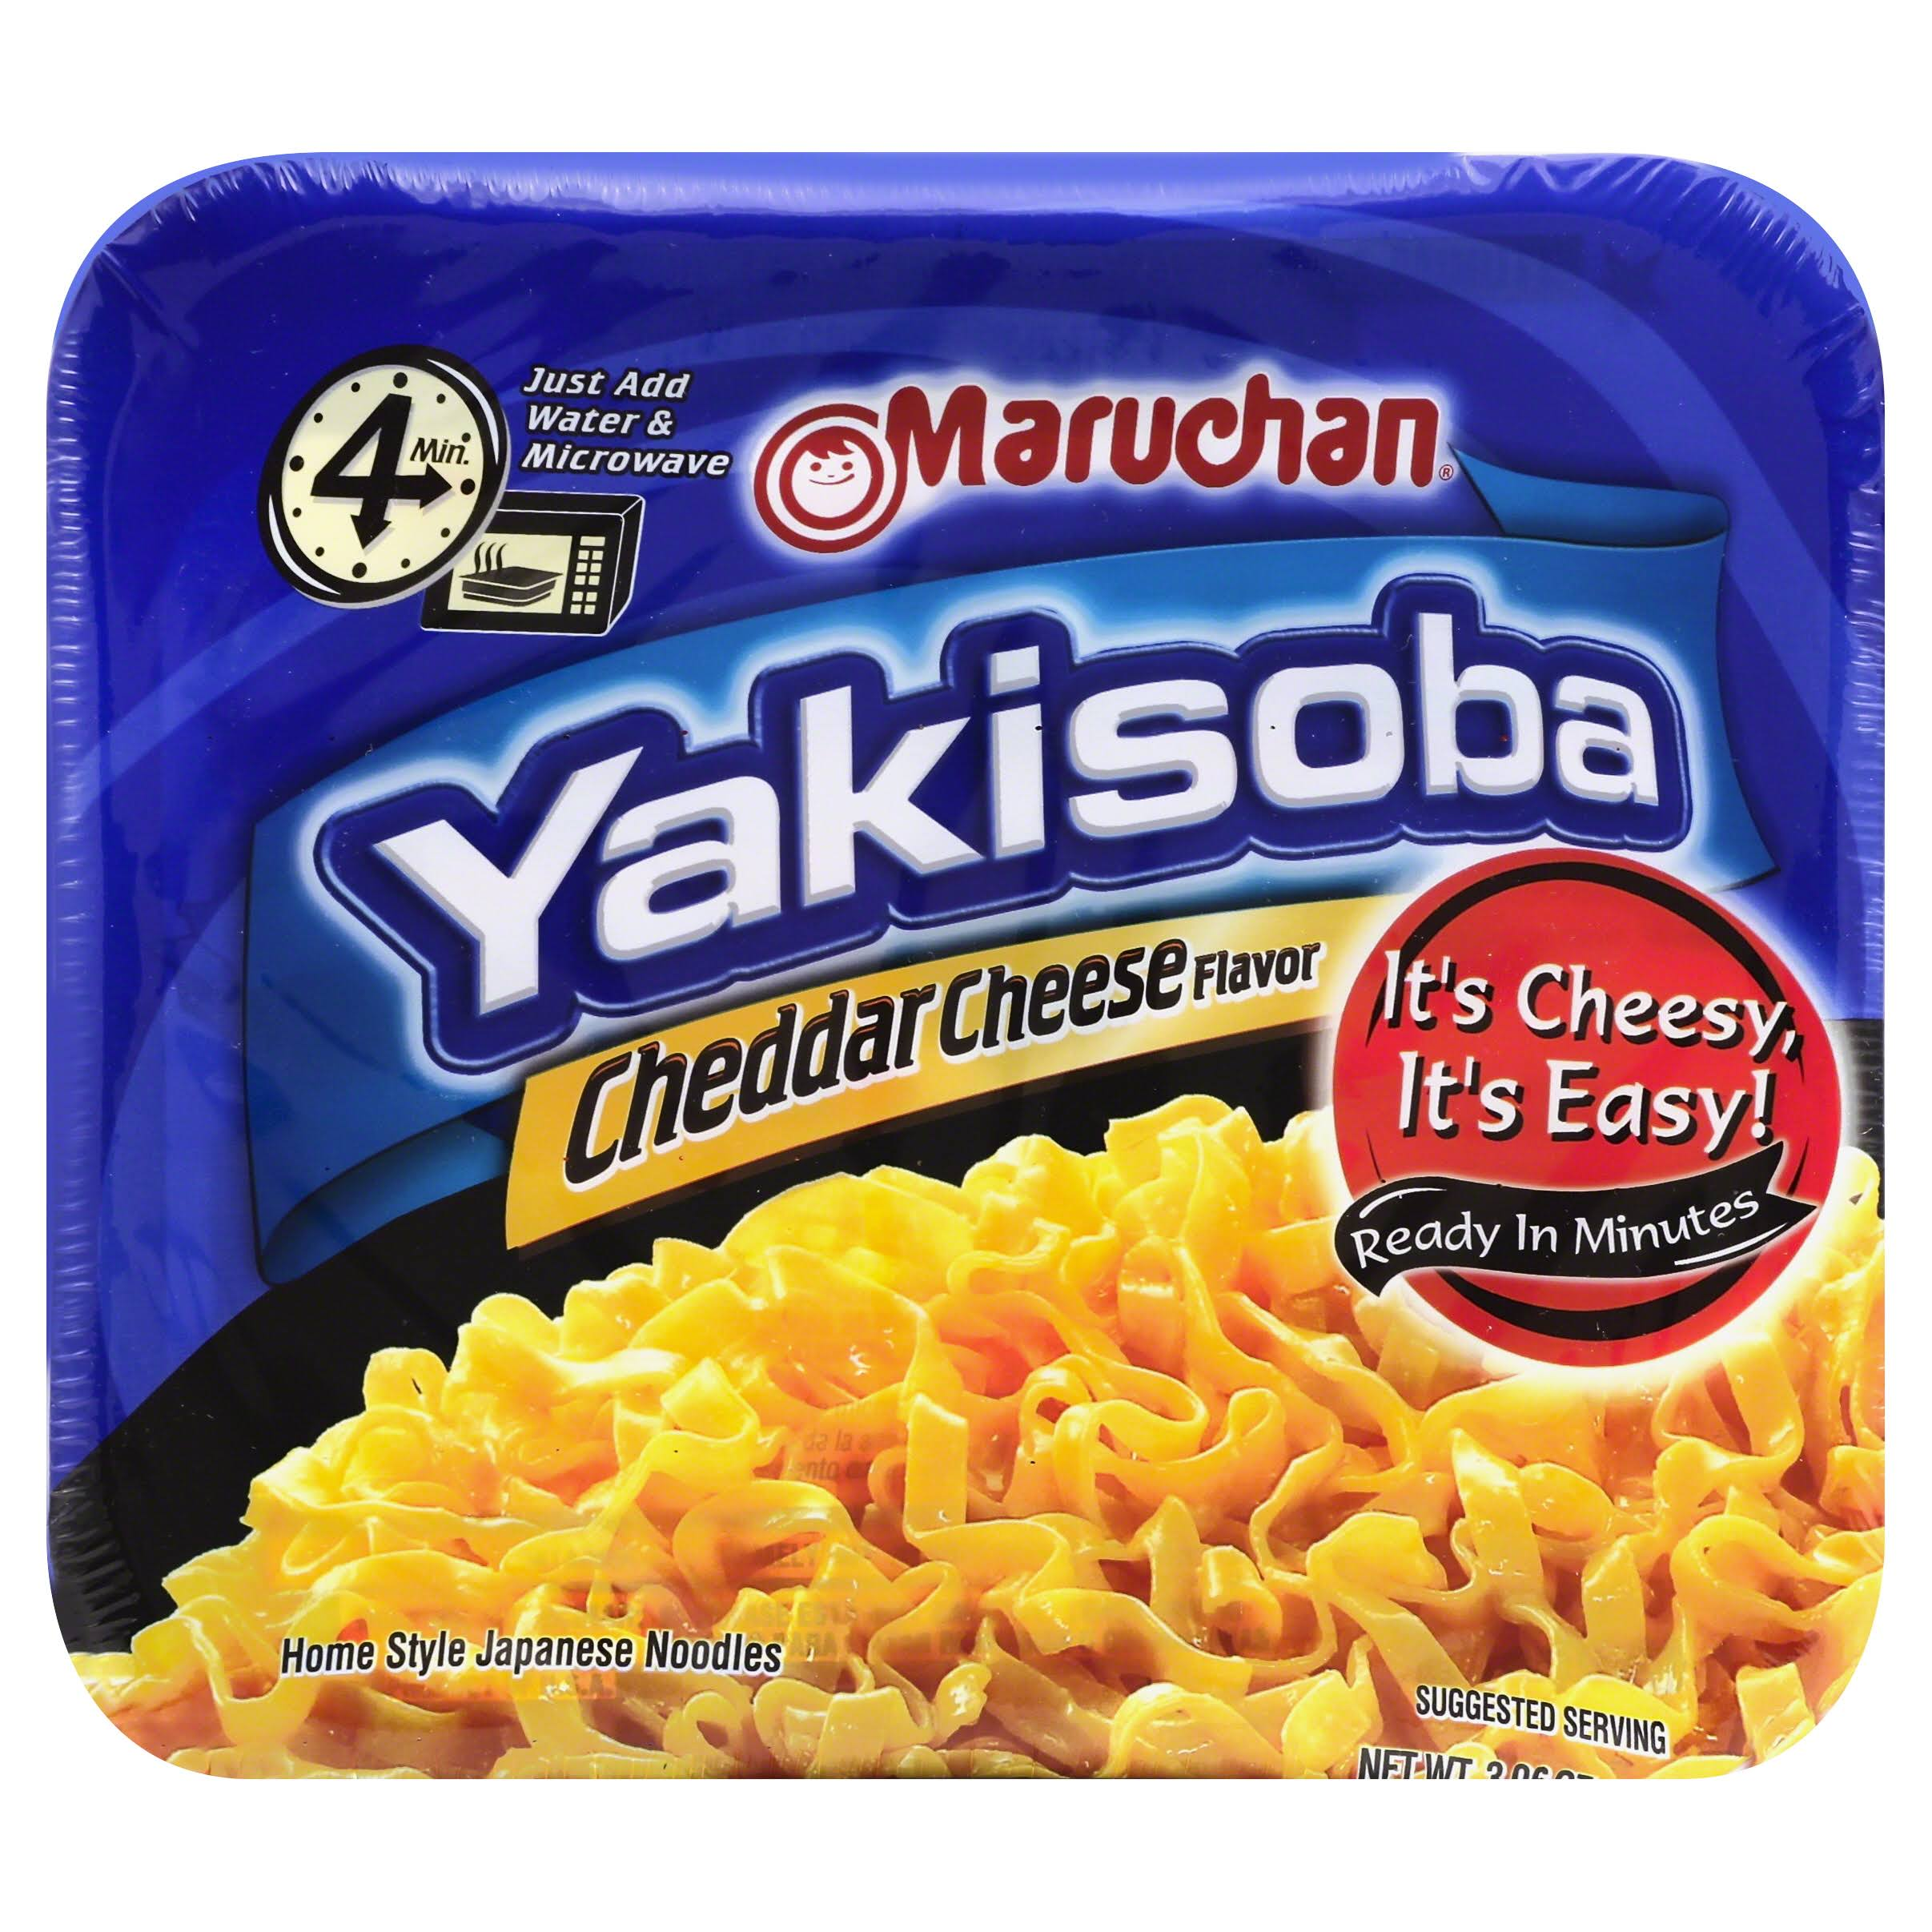 Maruchan Yakisoba Noodles - Cheddar Cheese Flavor, 3.96oz